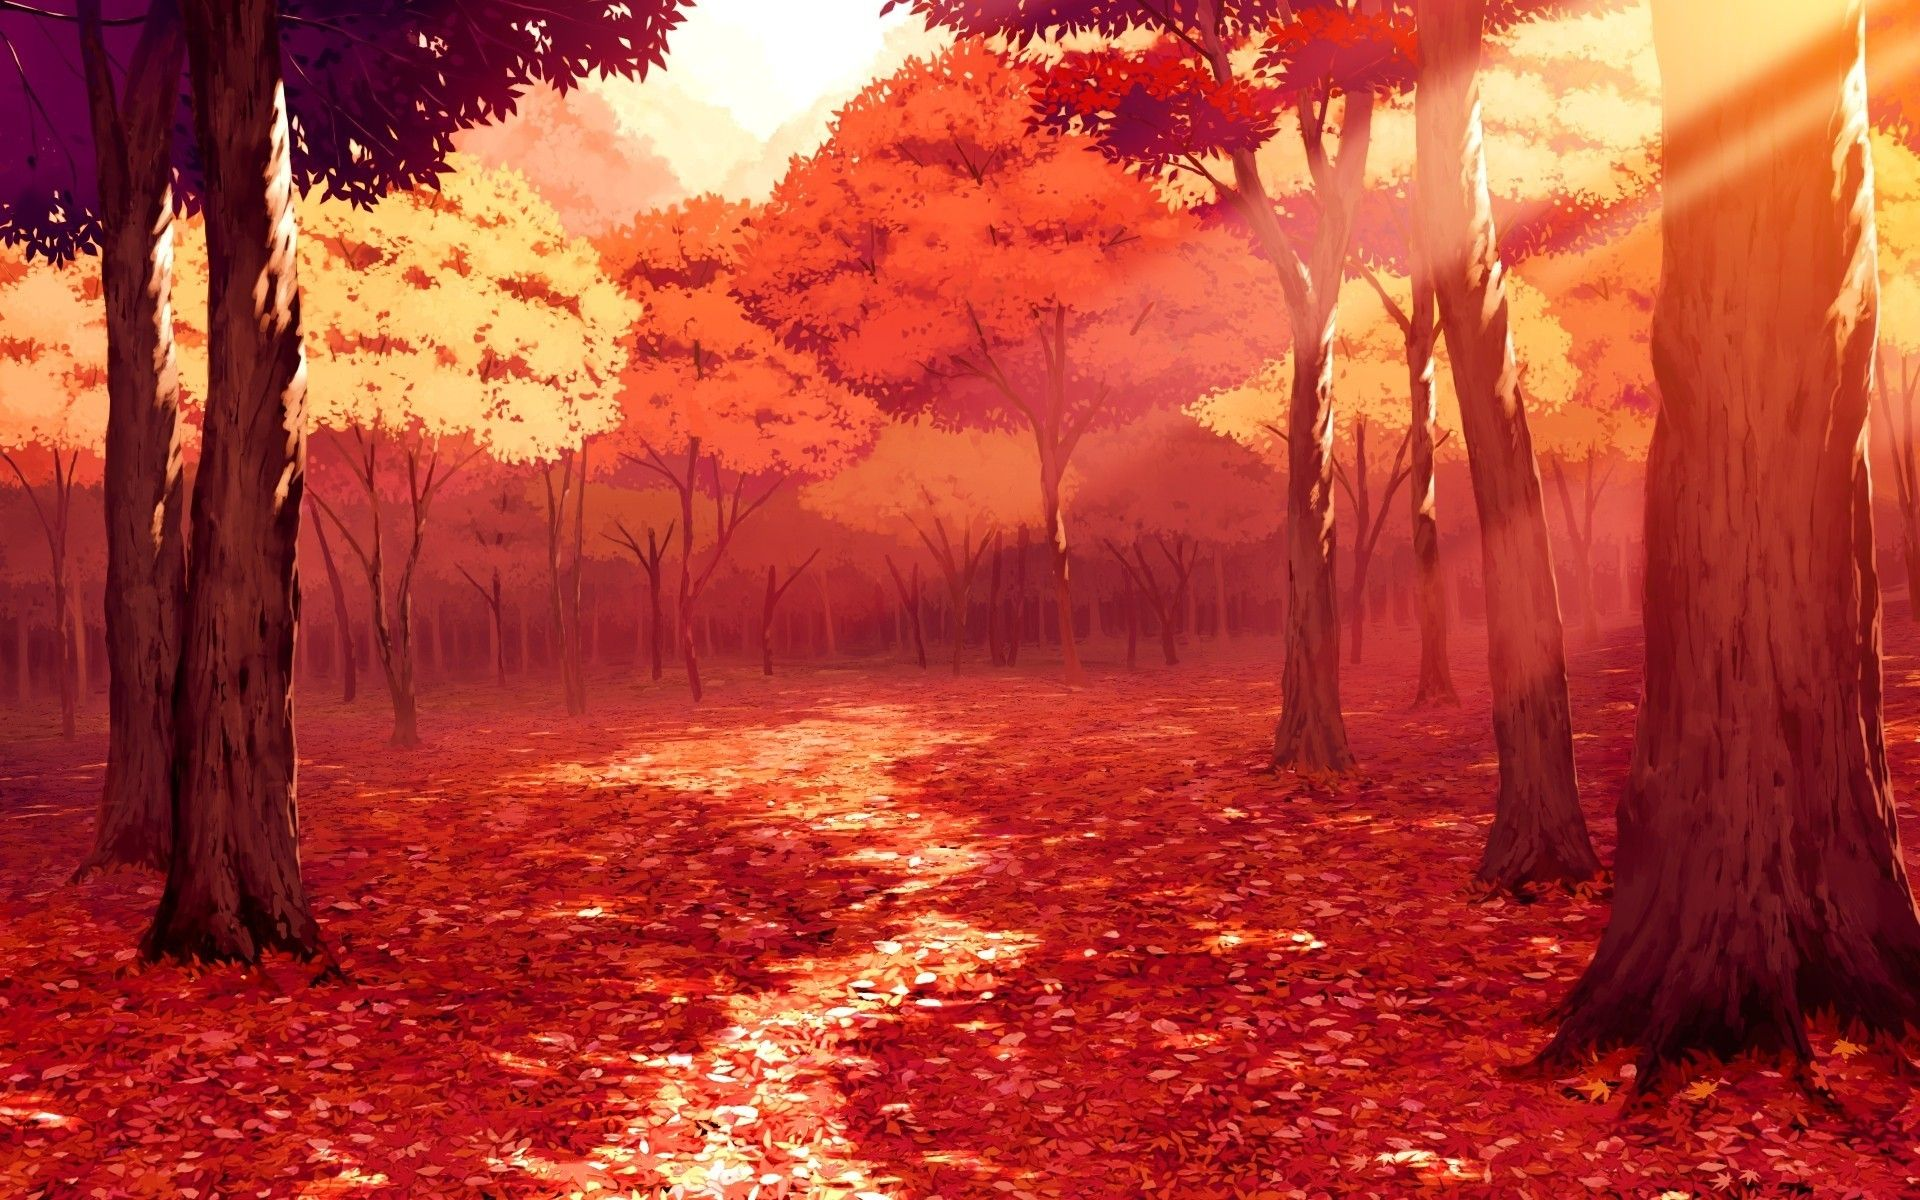 Anime wallpapers backgrounds 750 anime wallpapers hd - Beautiful anime wallpaper hd ...